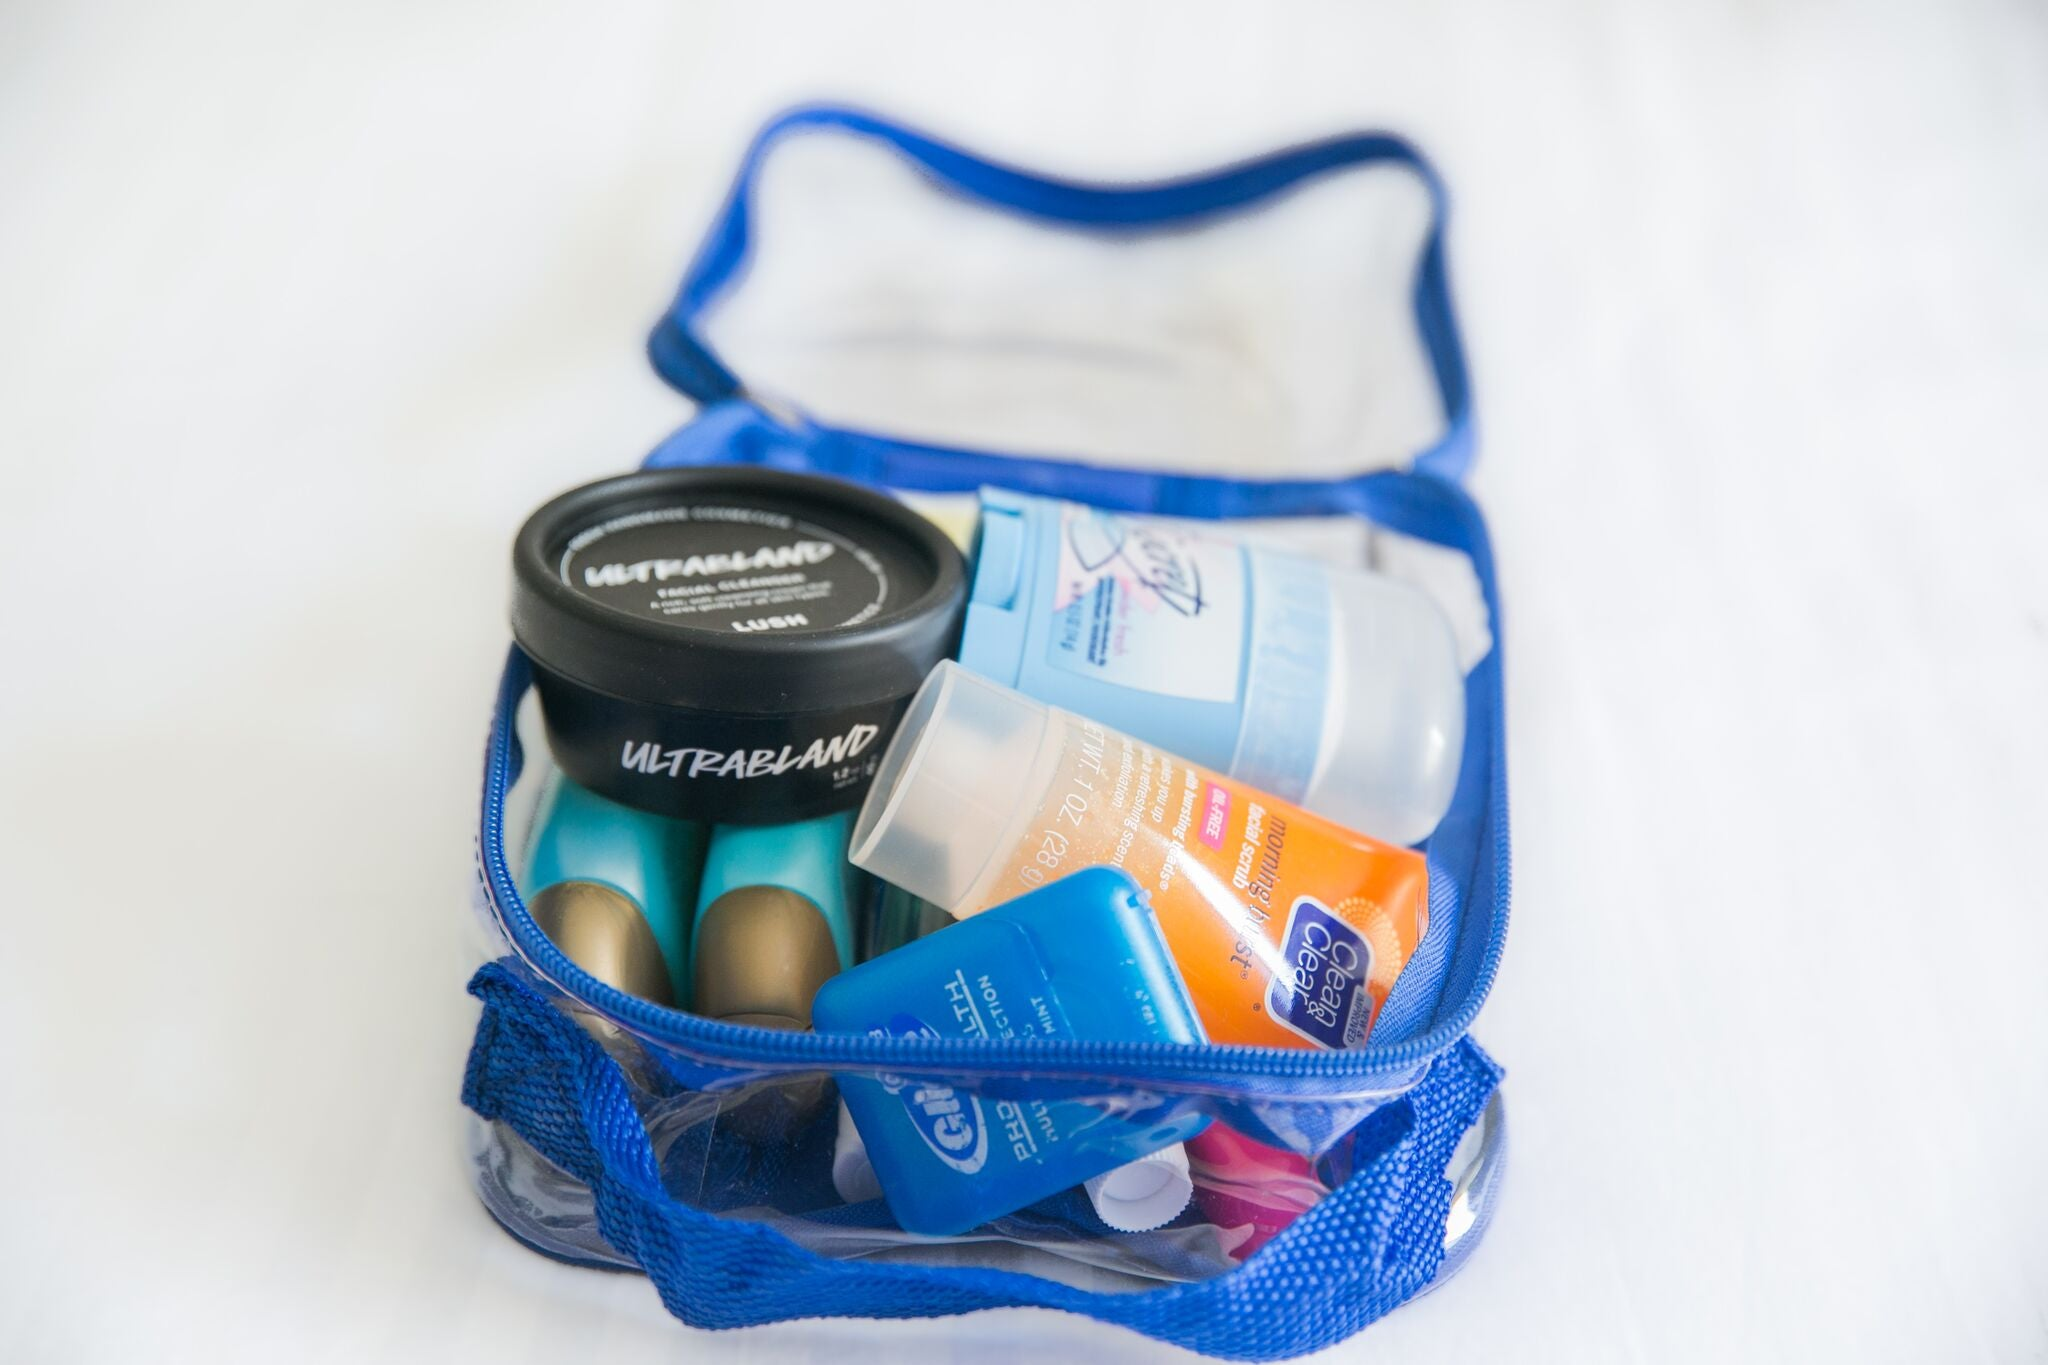 How to pack toiletries in packing cube